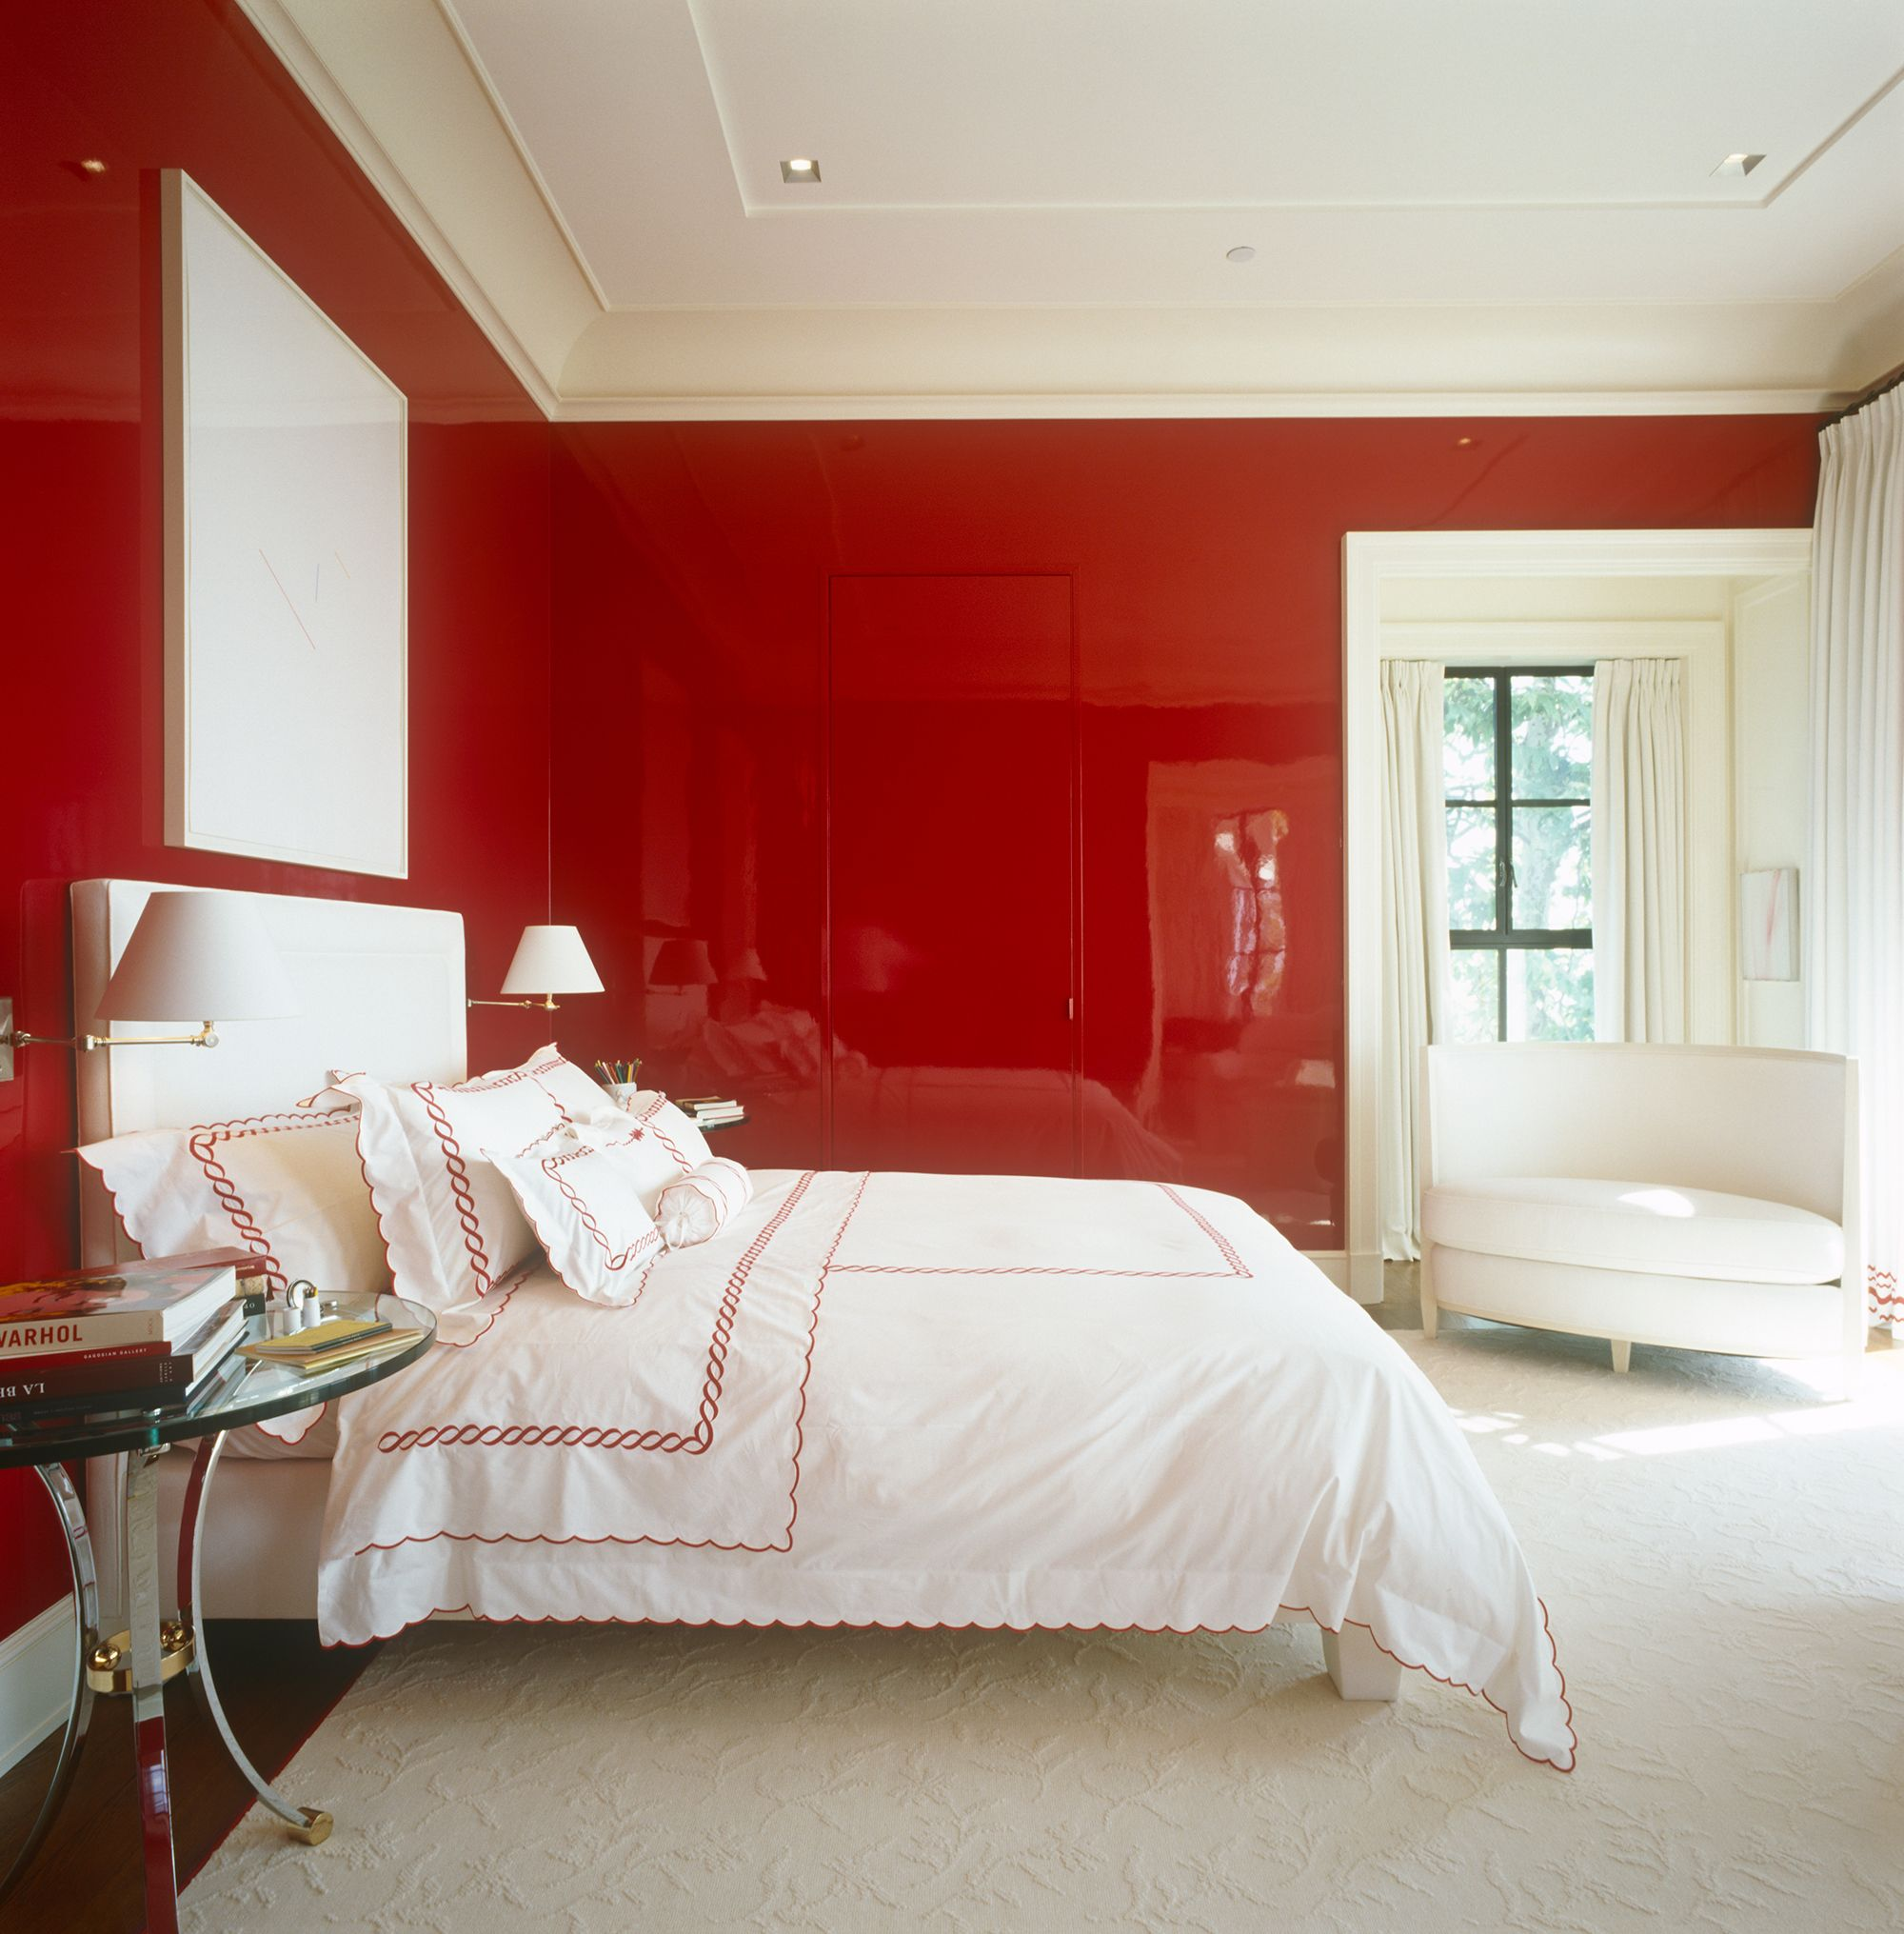 How to make a sexy bedroom